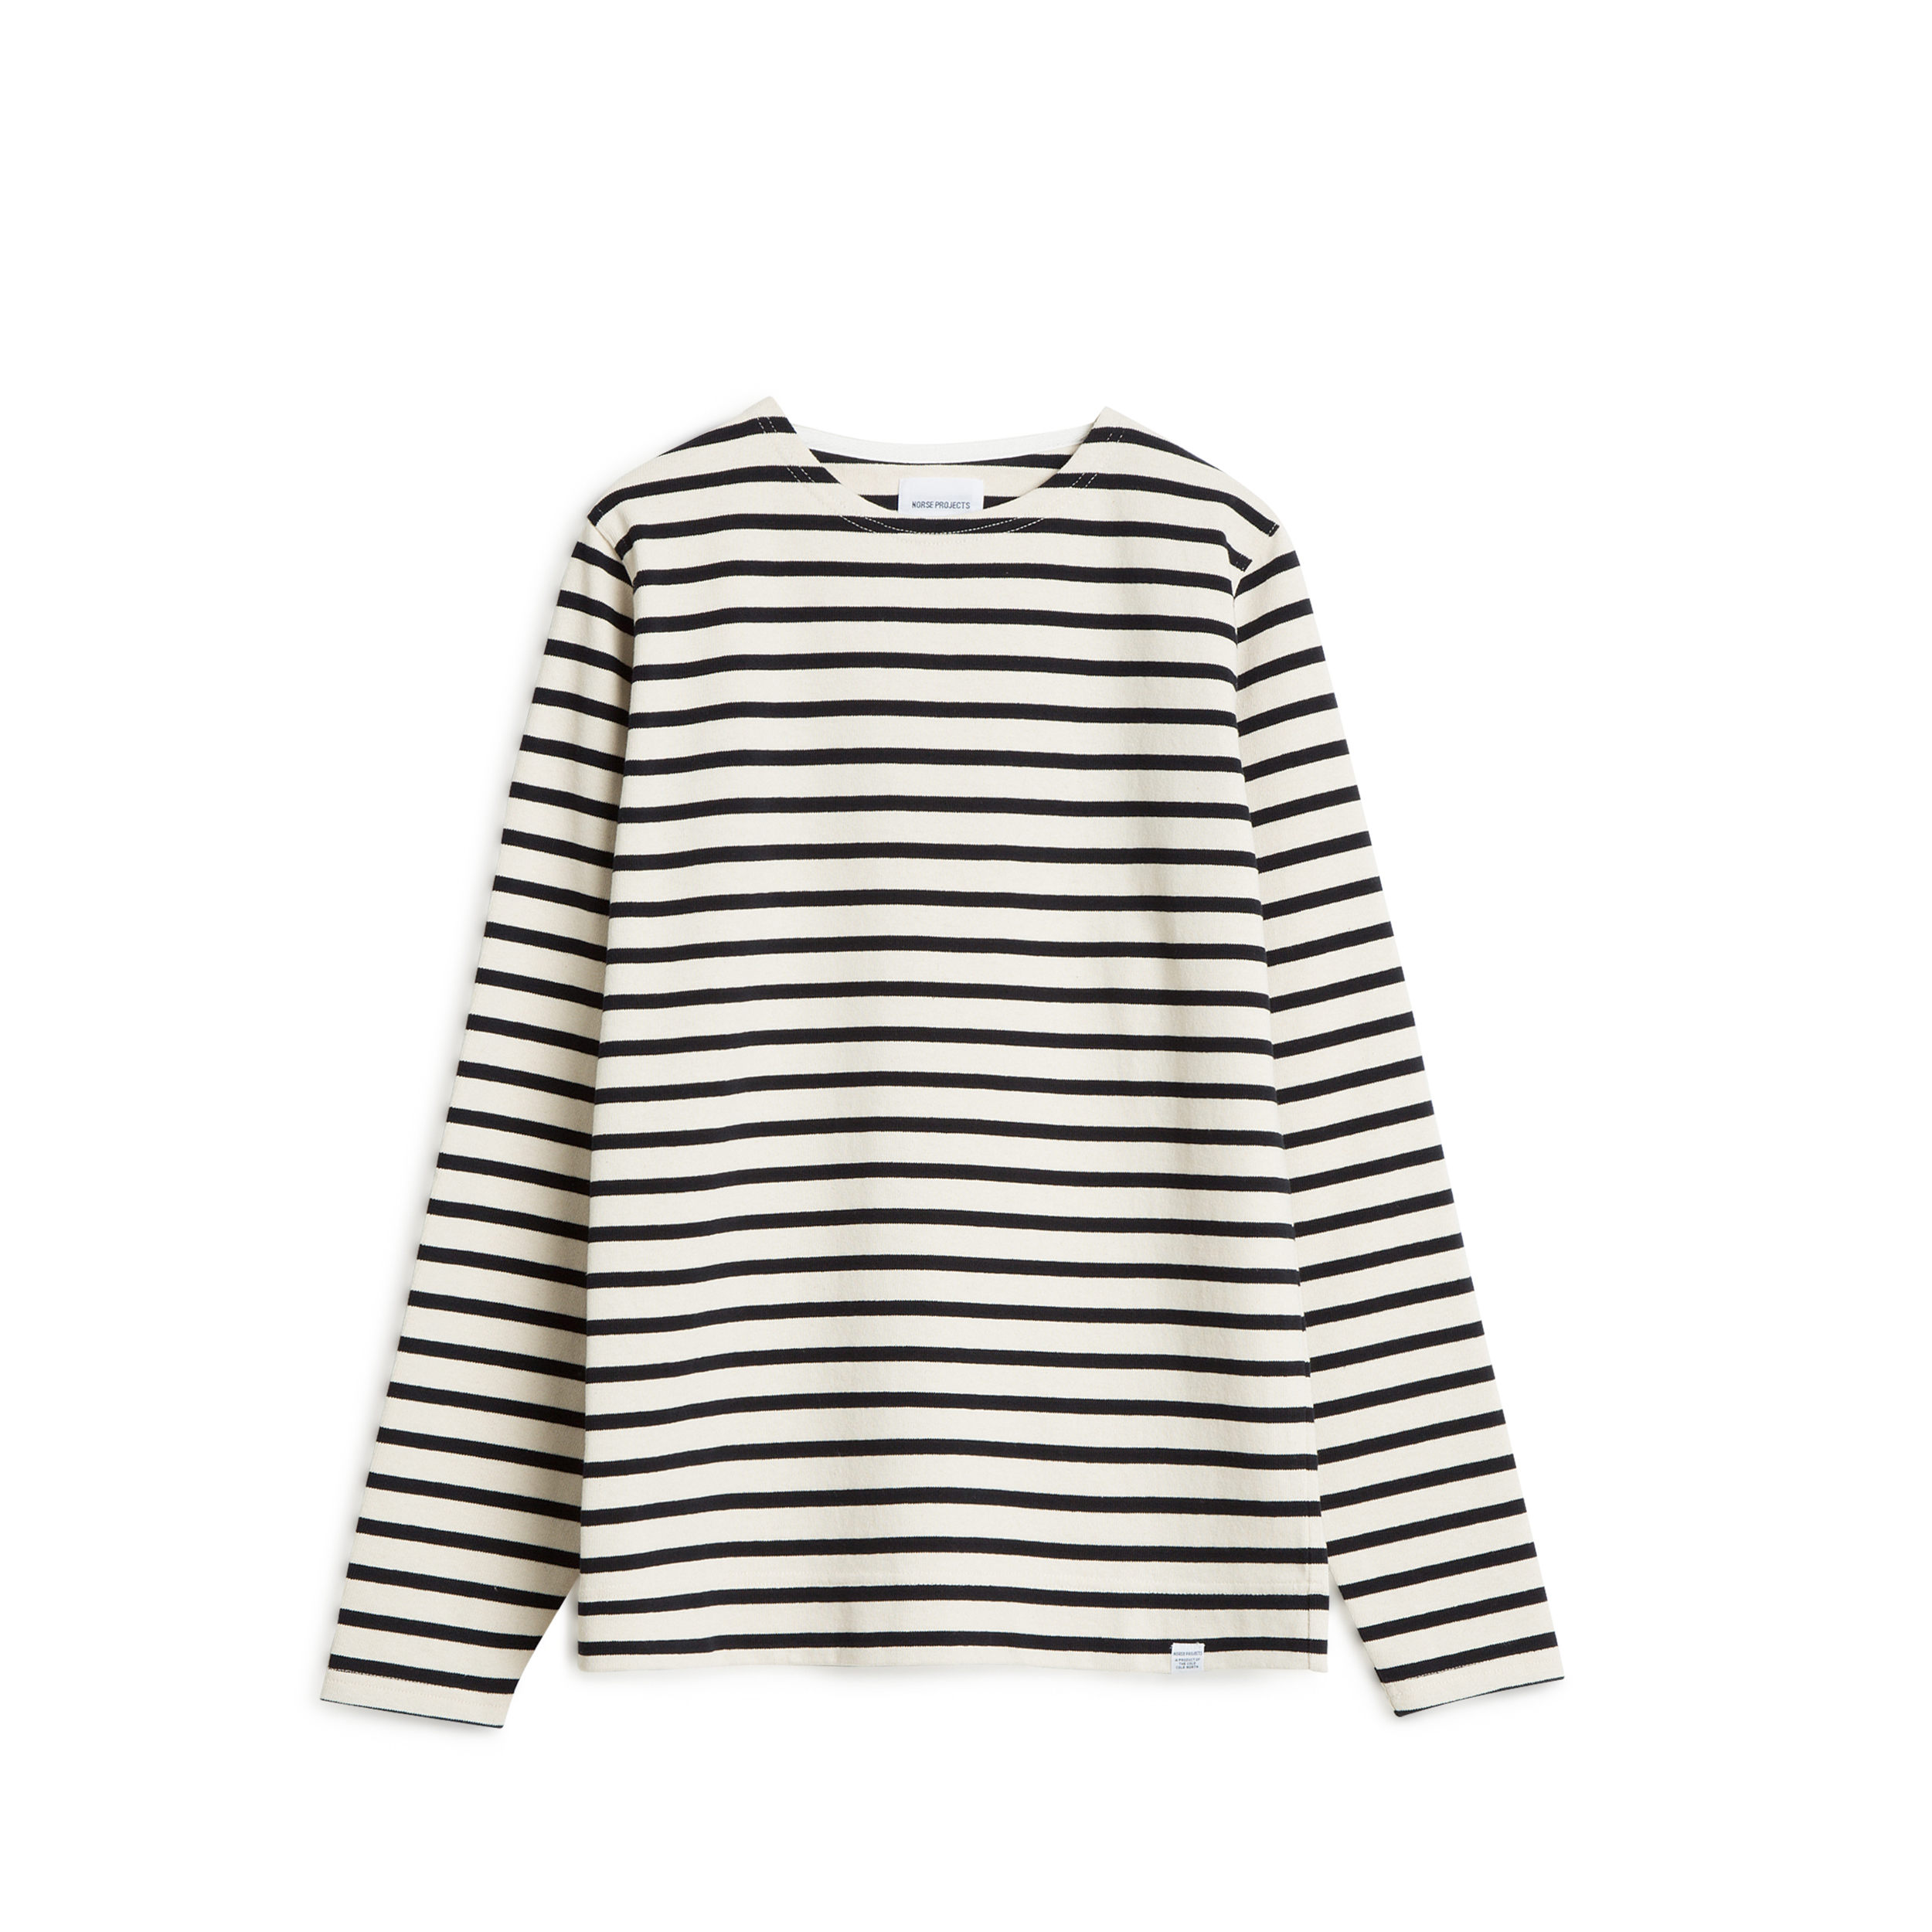 Norse Projects Godtfred Classic Compact - Ecru/Navy